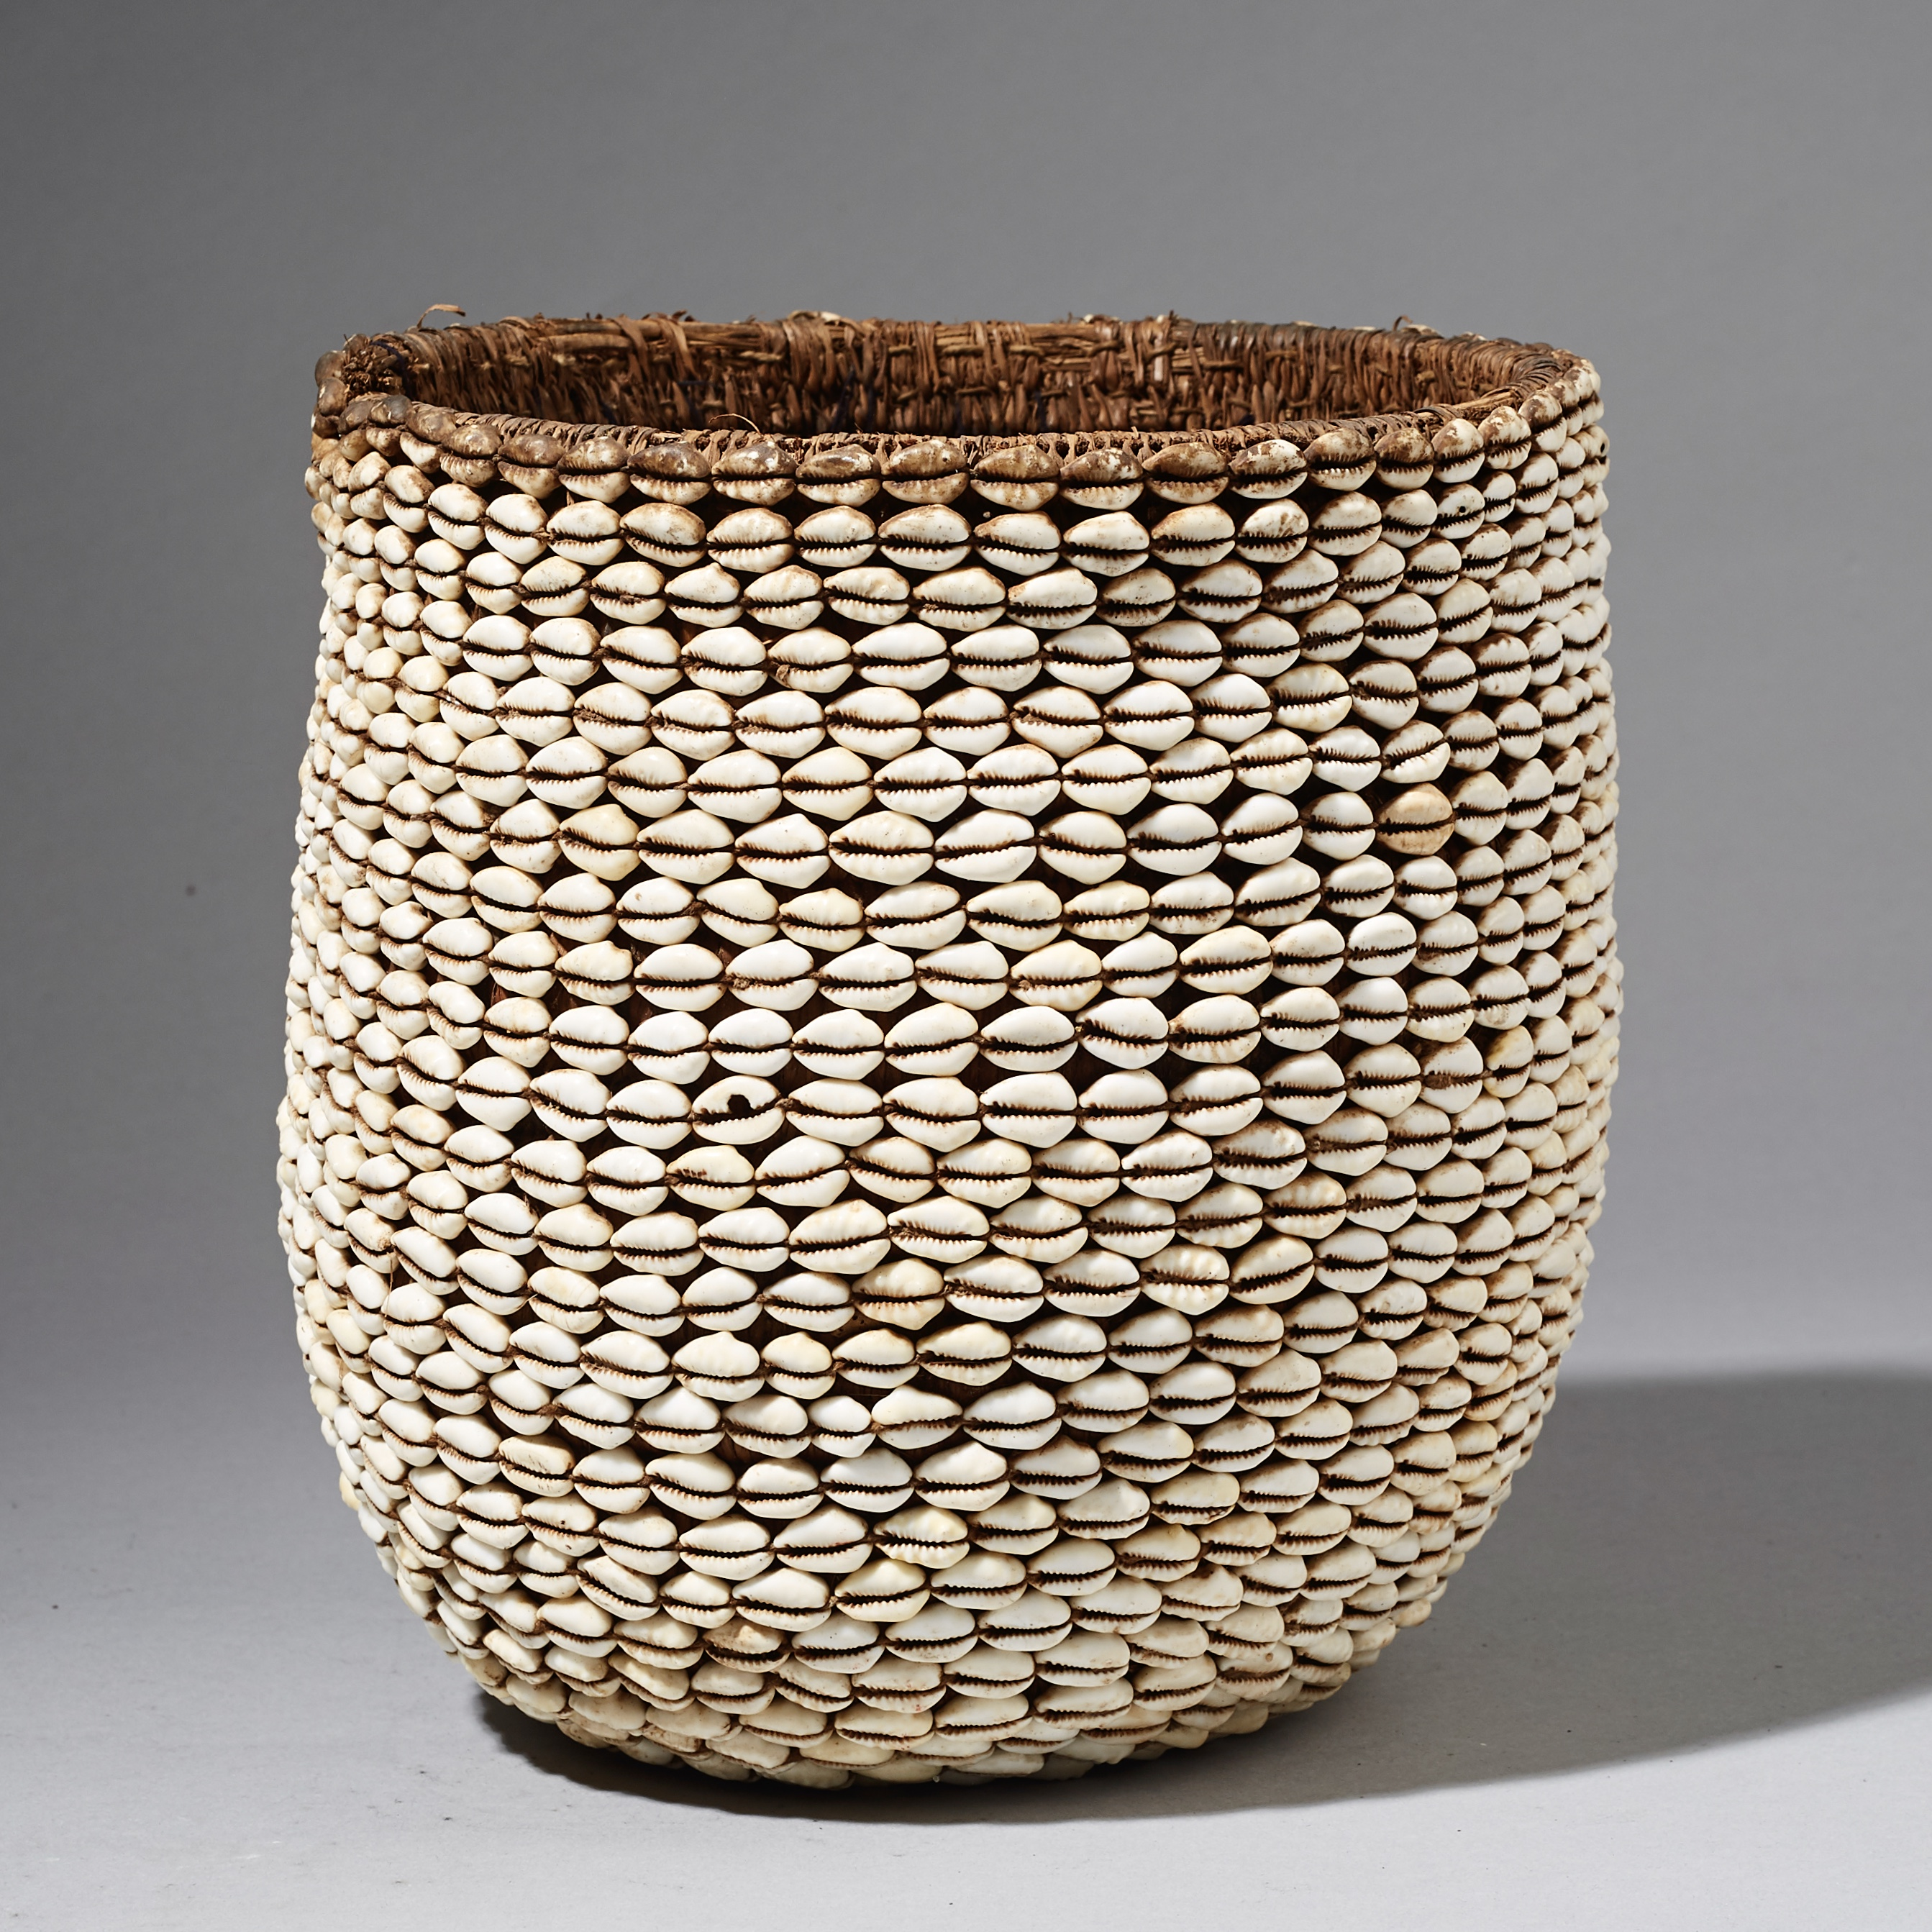 A WONDEROUS COWRIE BASKET, MOSSI TRIBE OF BURKINA FASO   ( No 2466 )